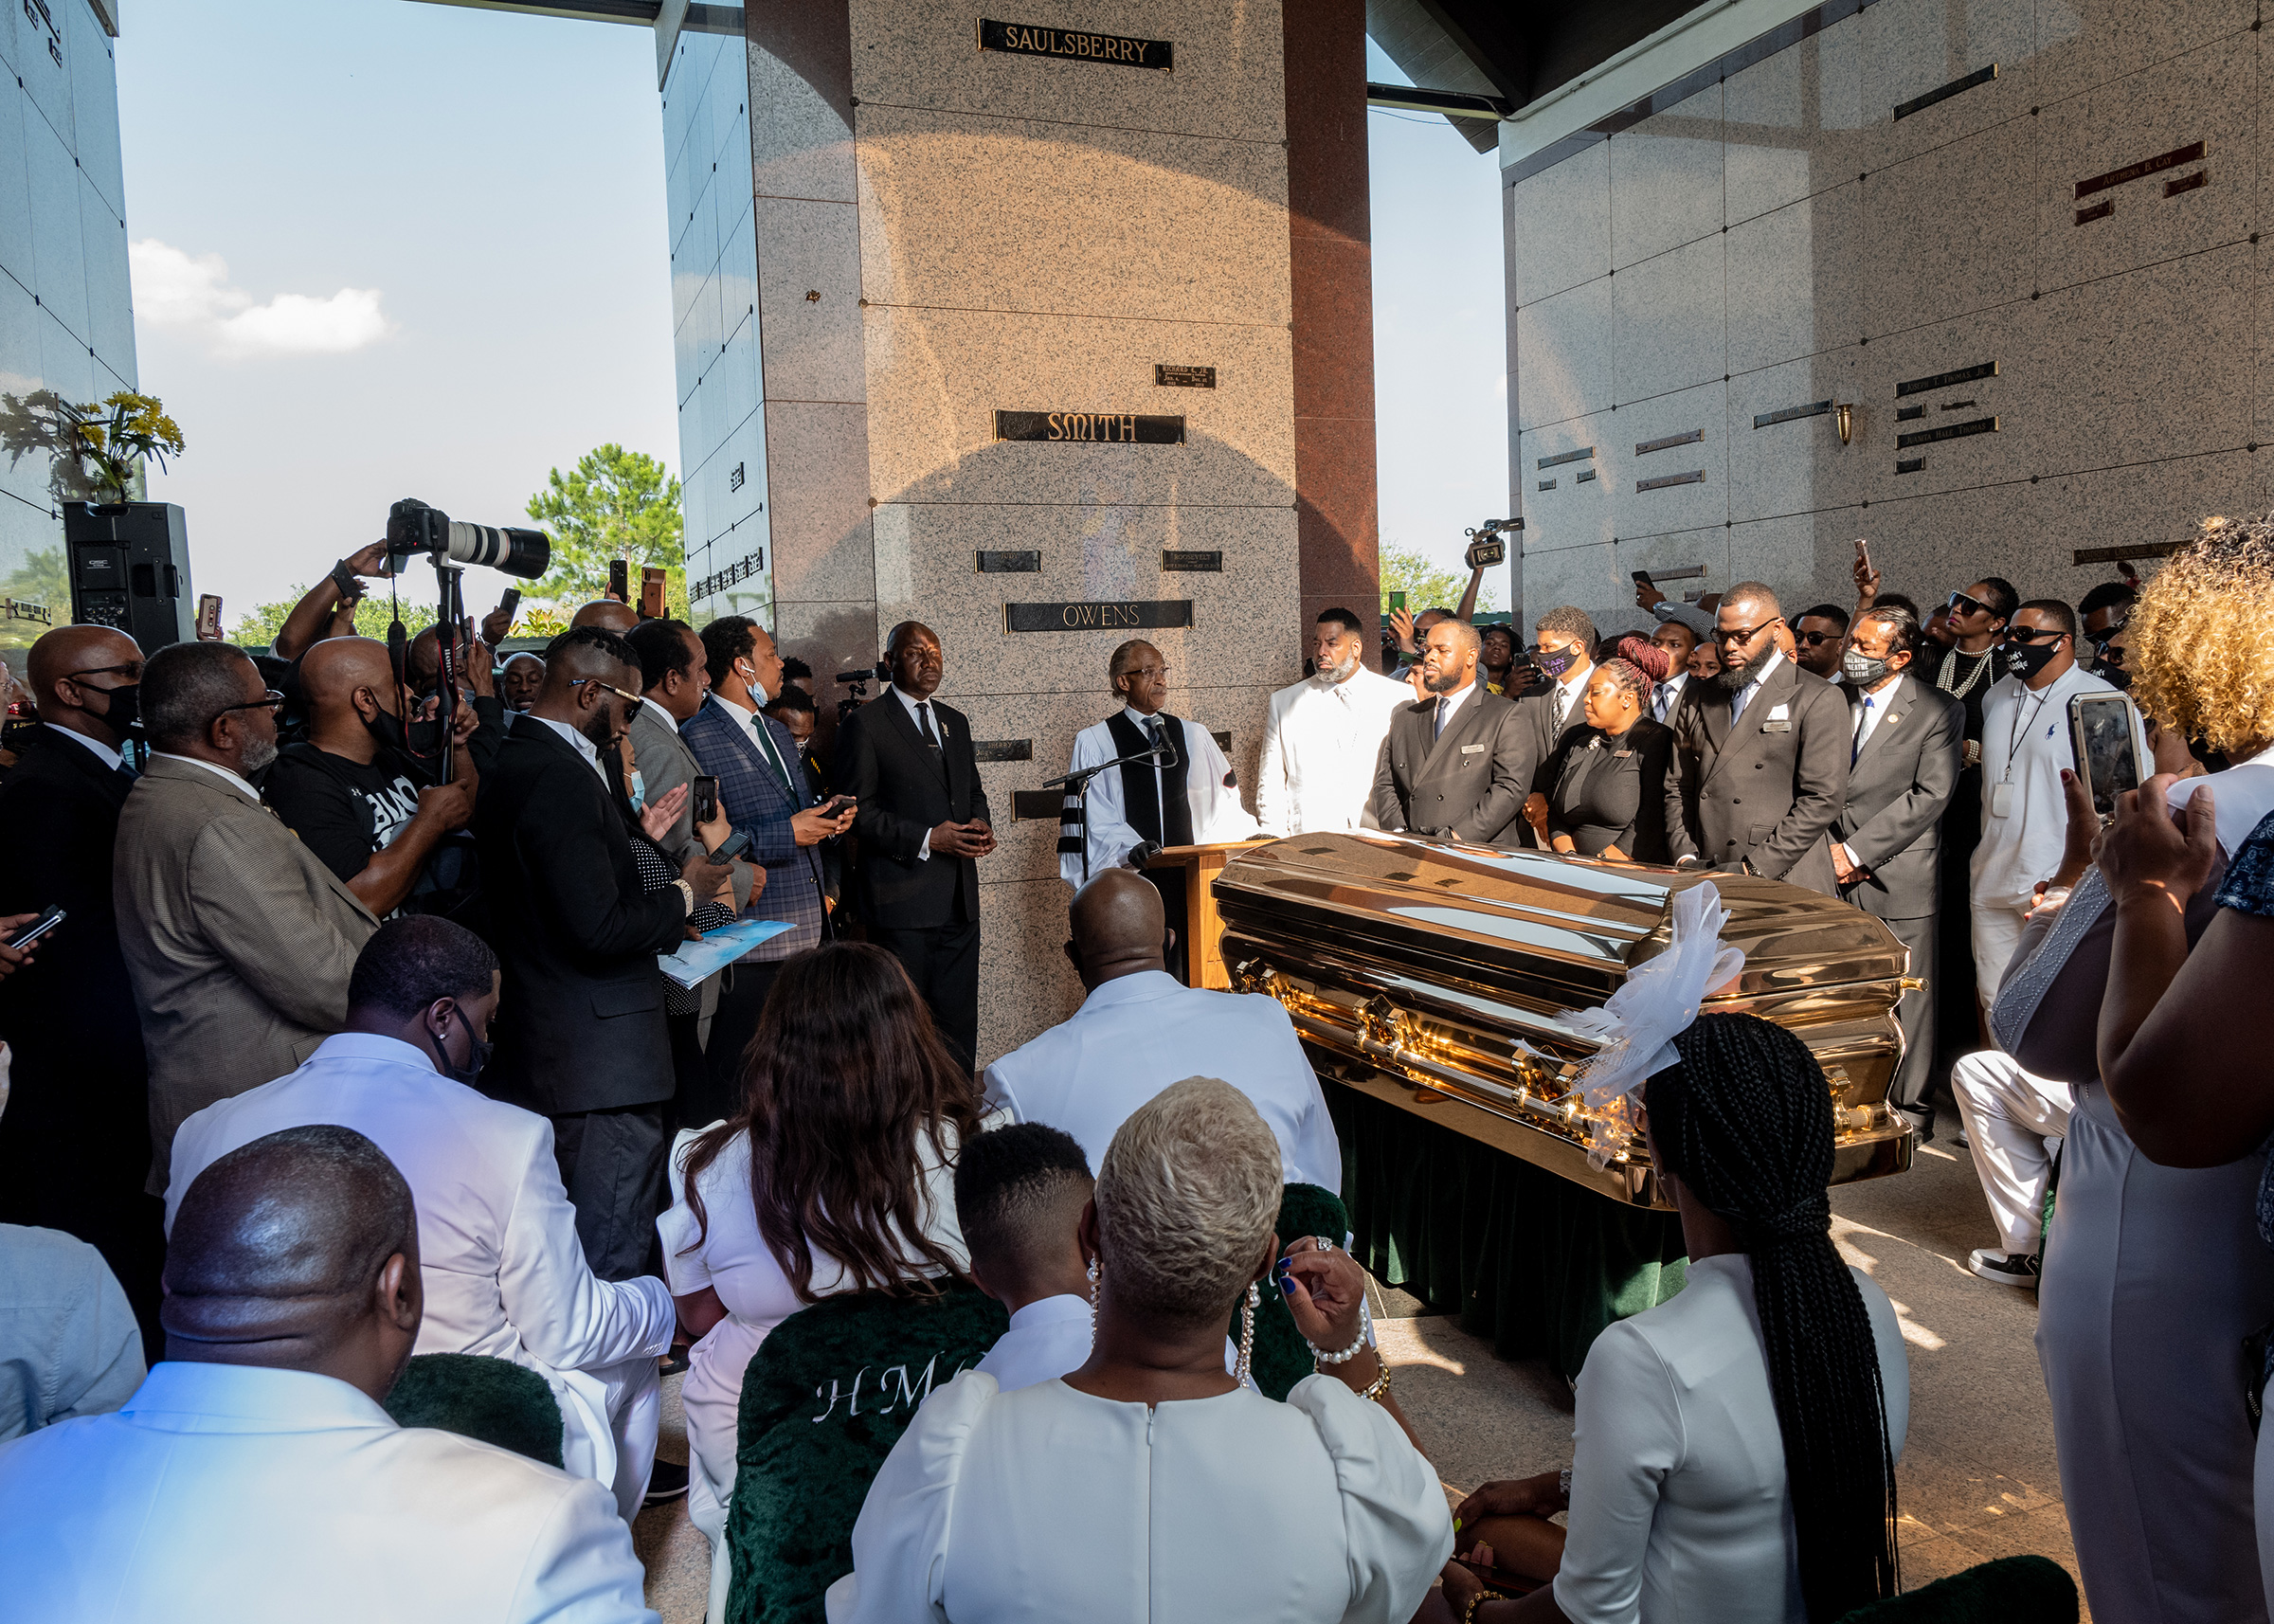 Rev. Al Sharpton speaks at the private funeral service for George Floyd onJune 9, 2020.